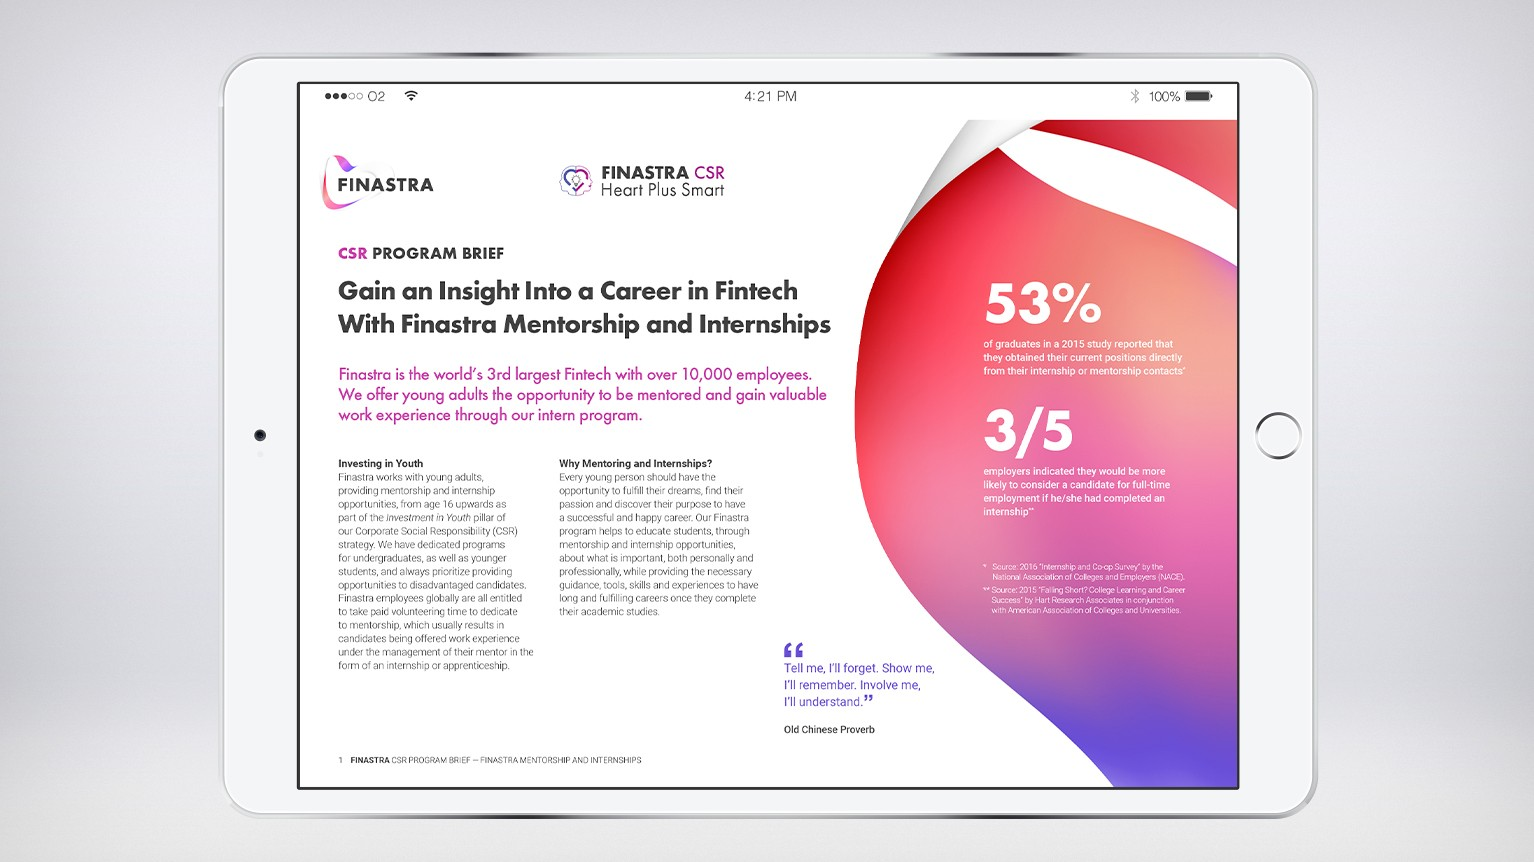 Finastra Mentorship and Internship Program Brief